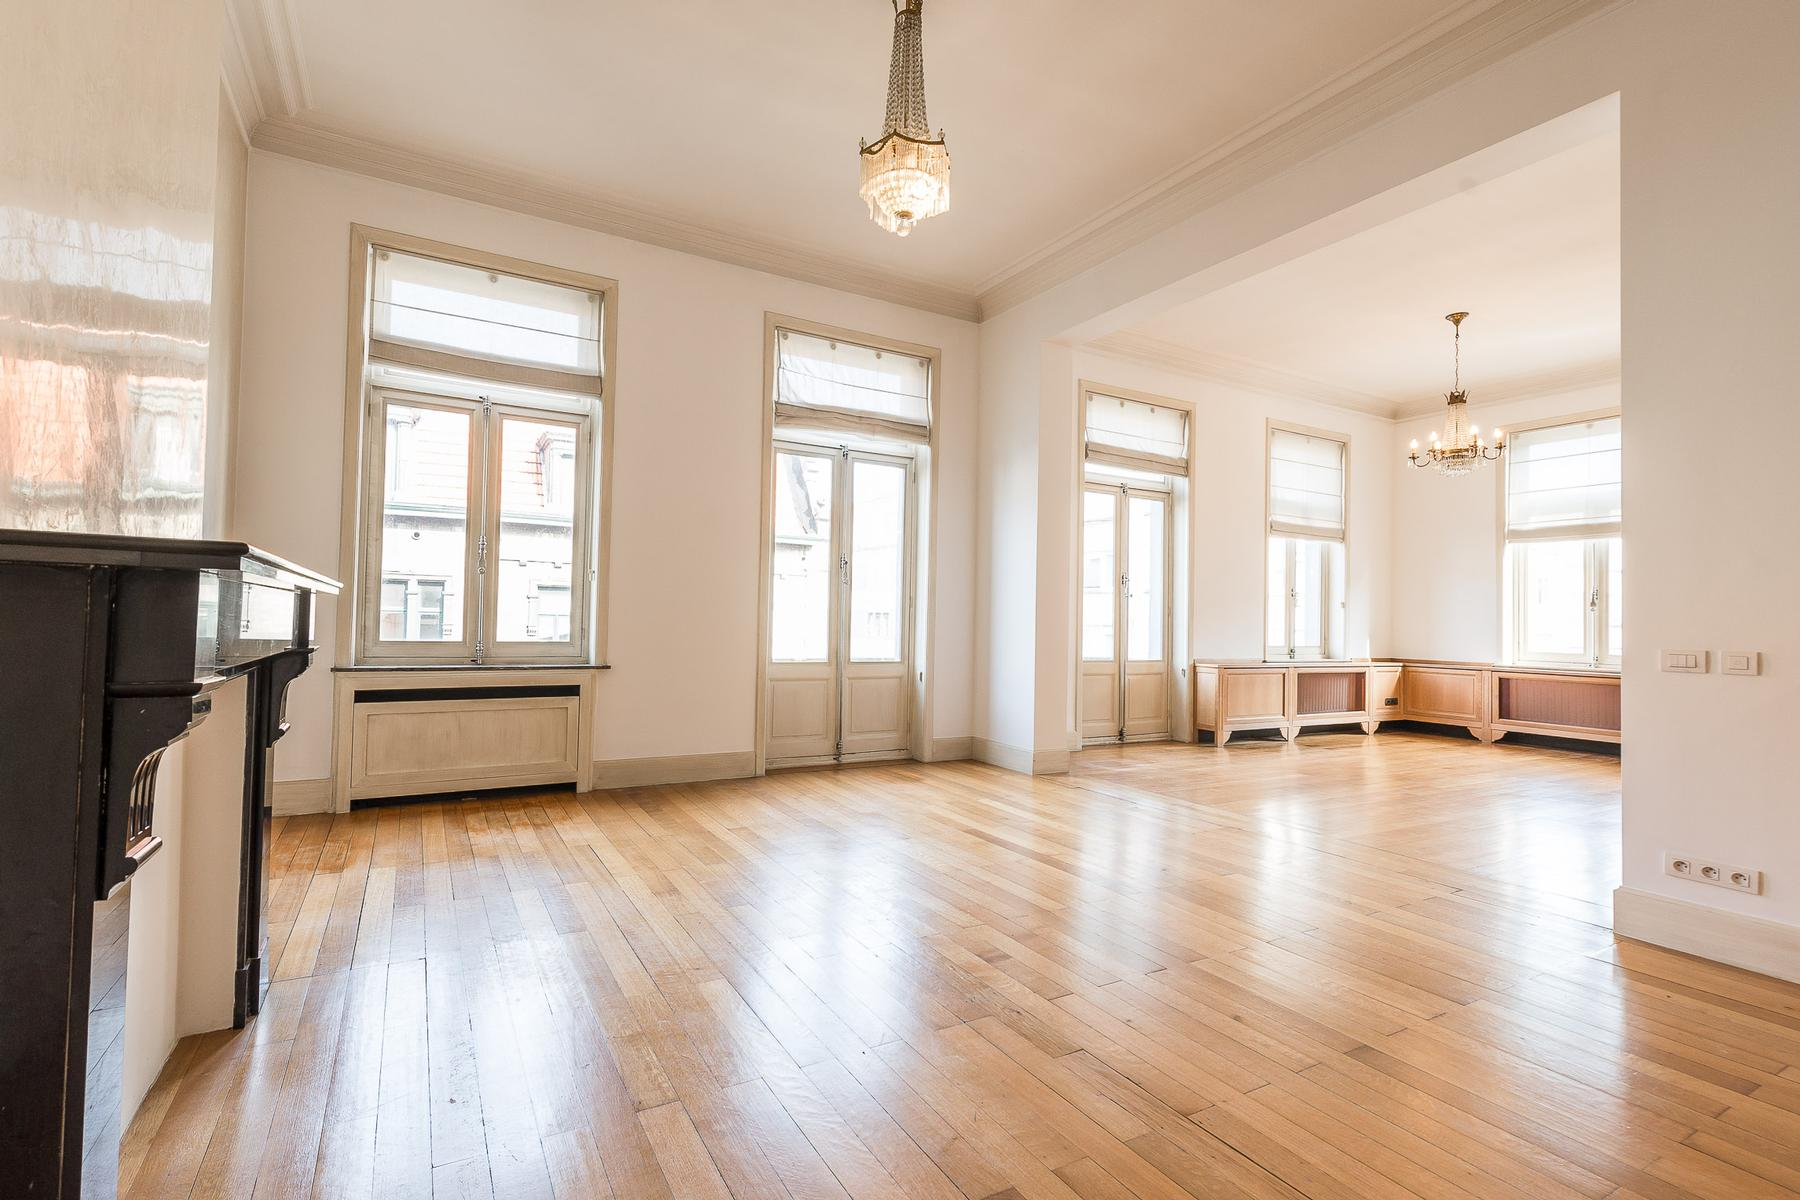 Apartment for Rent at Ixelles I Châtelain 97 Rue de Livourne Brussels, Brussels 1000 Belgium